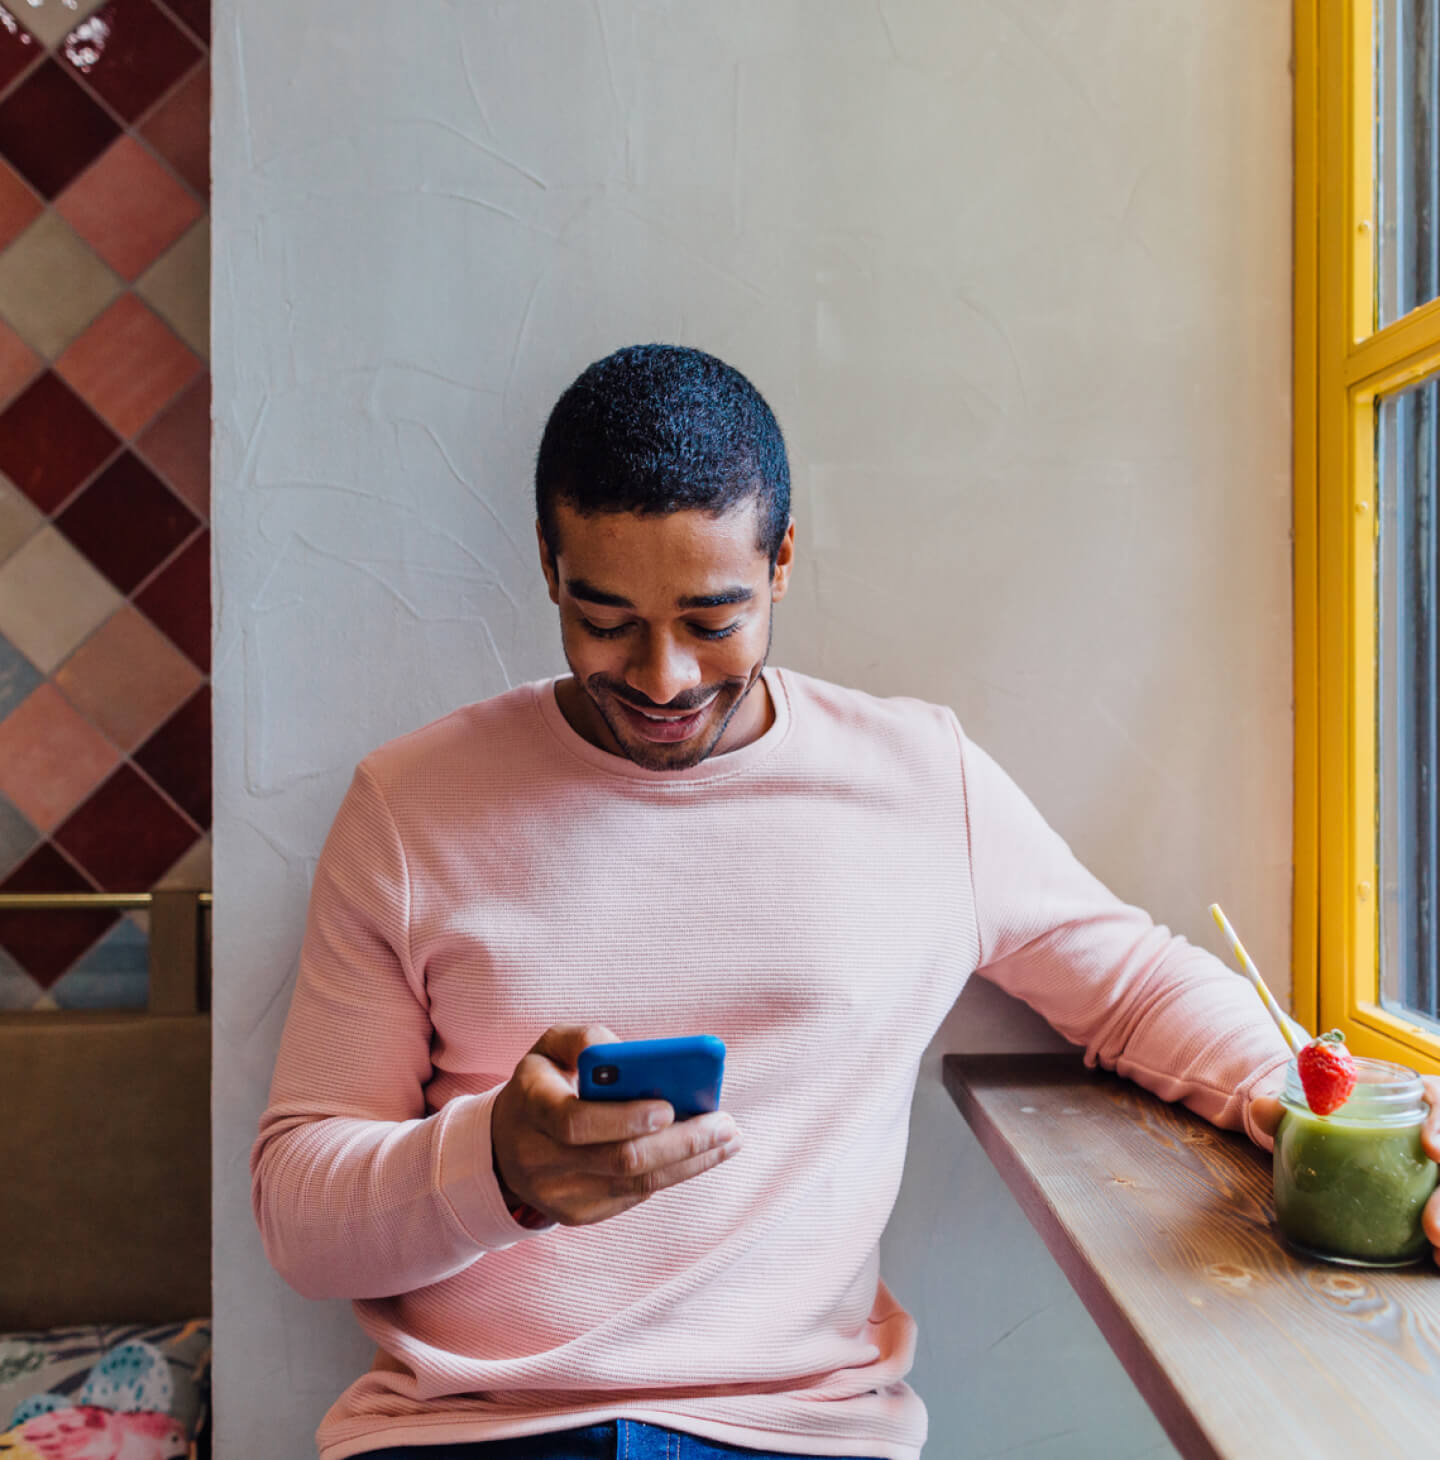 Guy in a pink shirt smiling at his phone